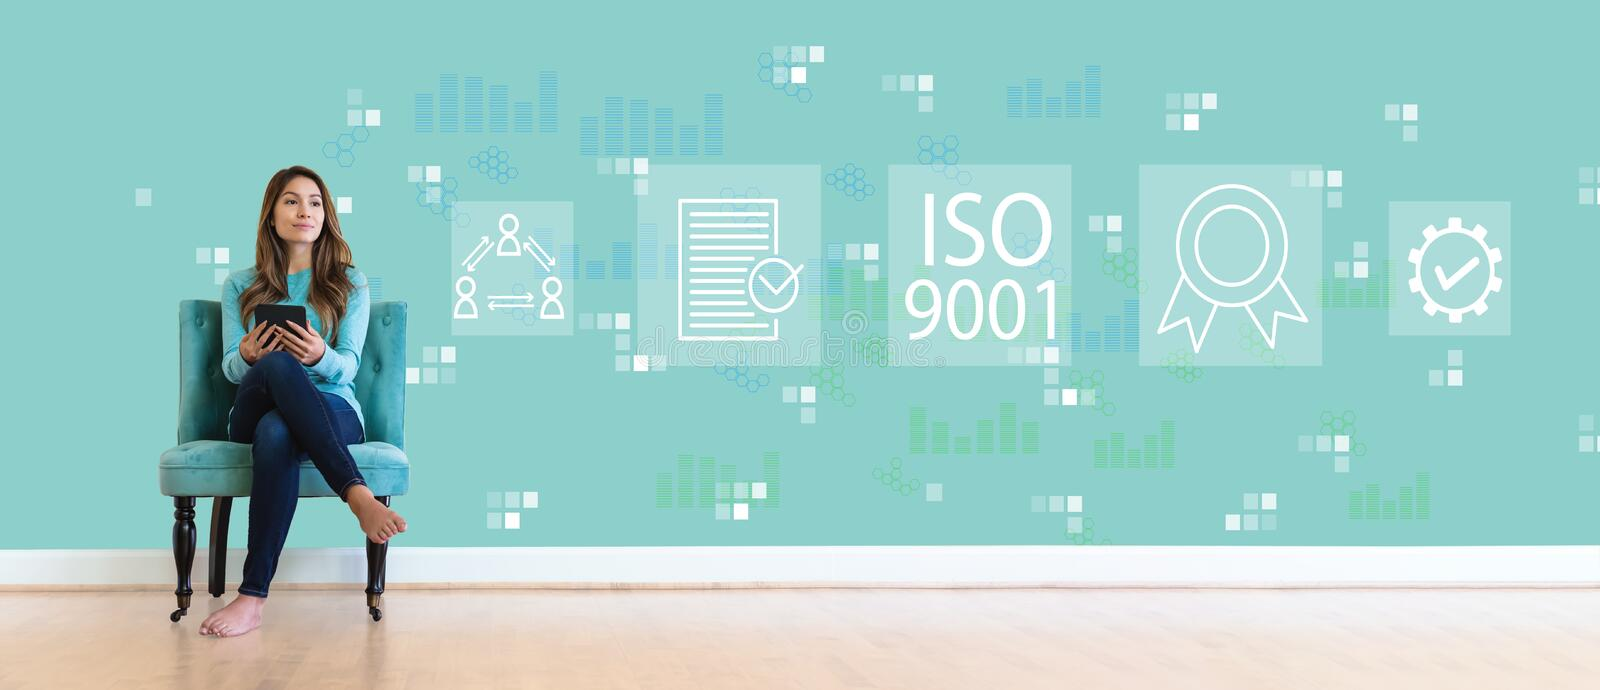 ISO 9001 with young woman stock image